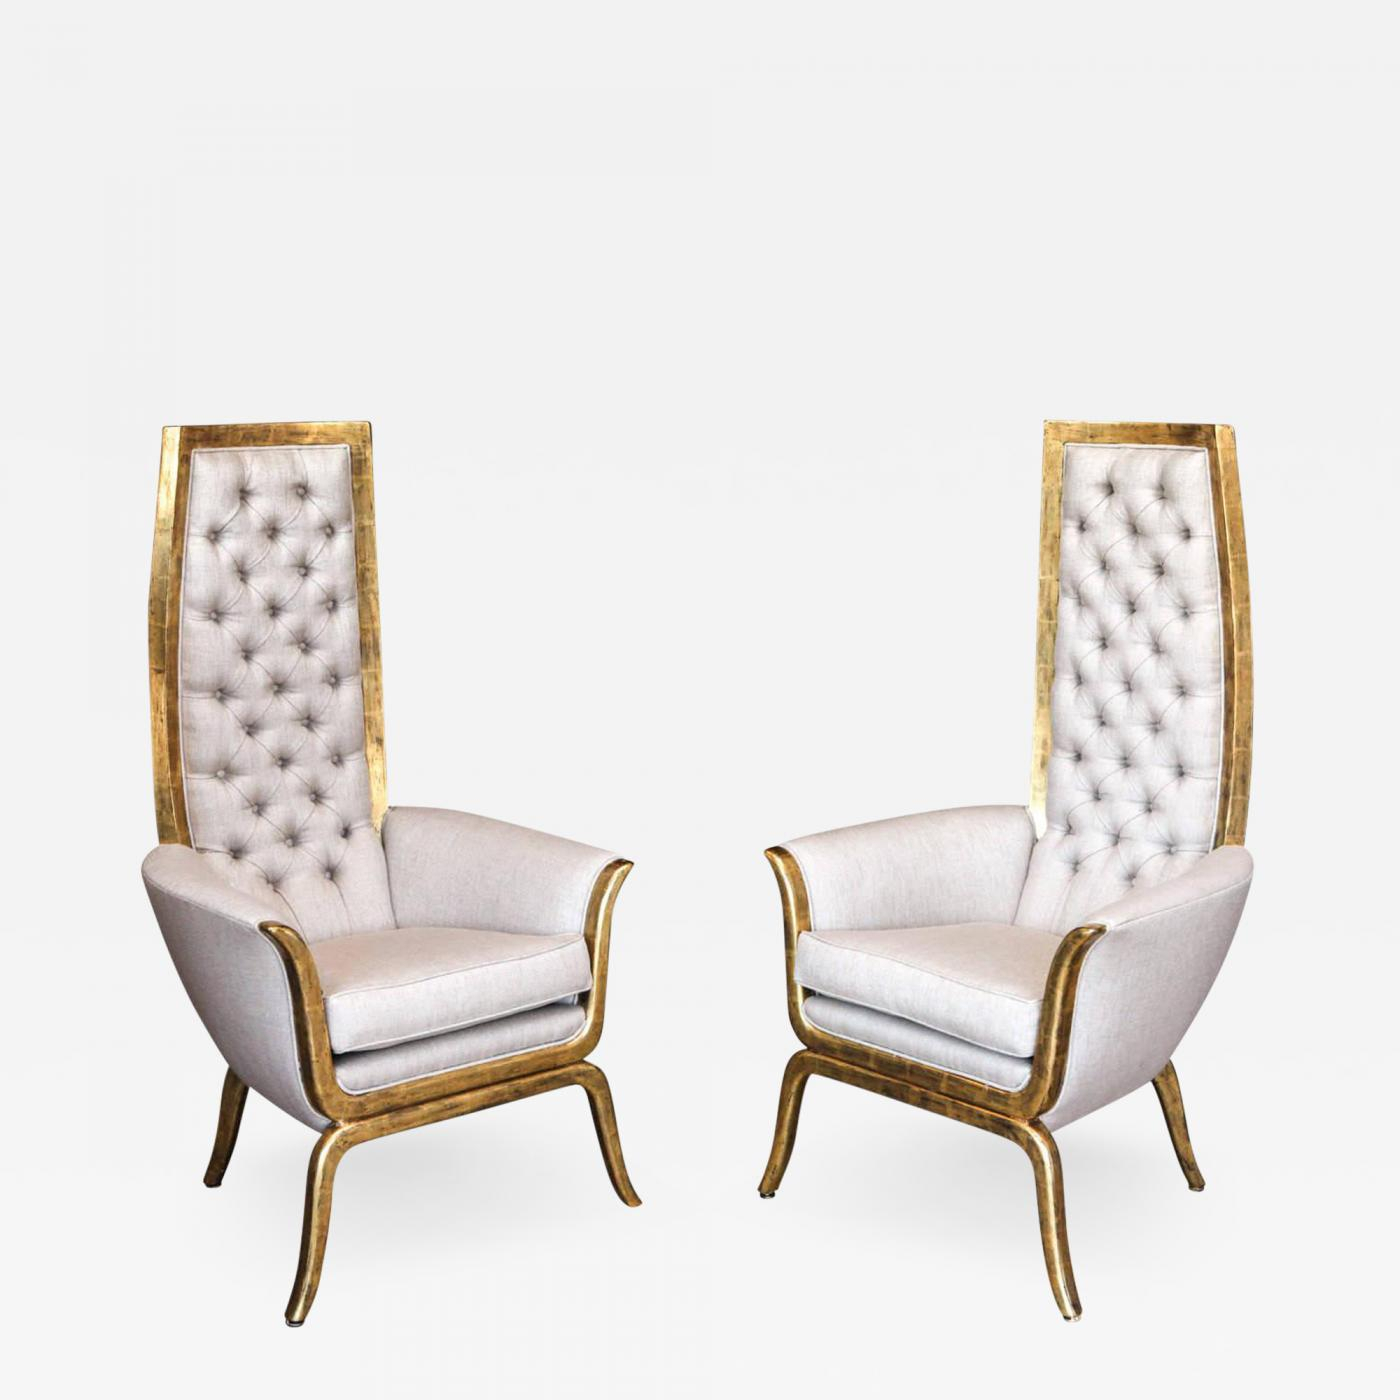 James Mont – Pair Of James Mont Style High Back Armchairs With 22 Karat Gold Finish With Regard To James Armchairs (View 14 of 15)